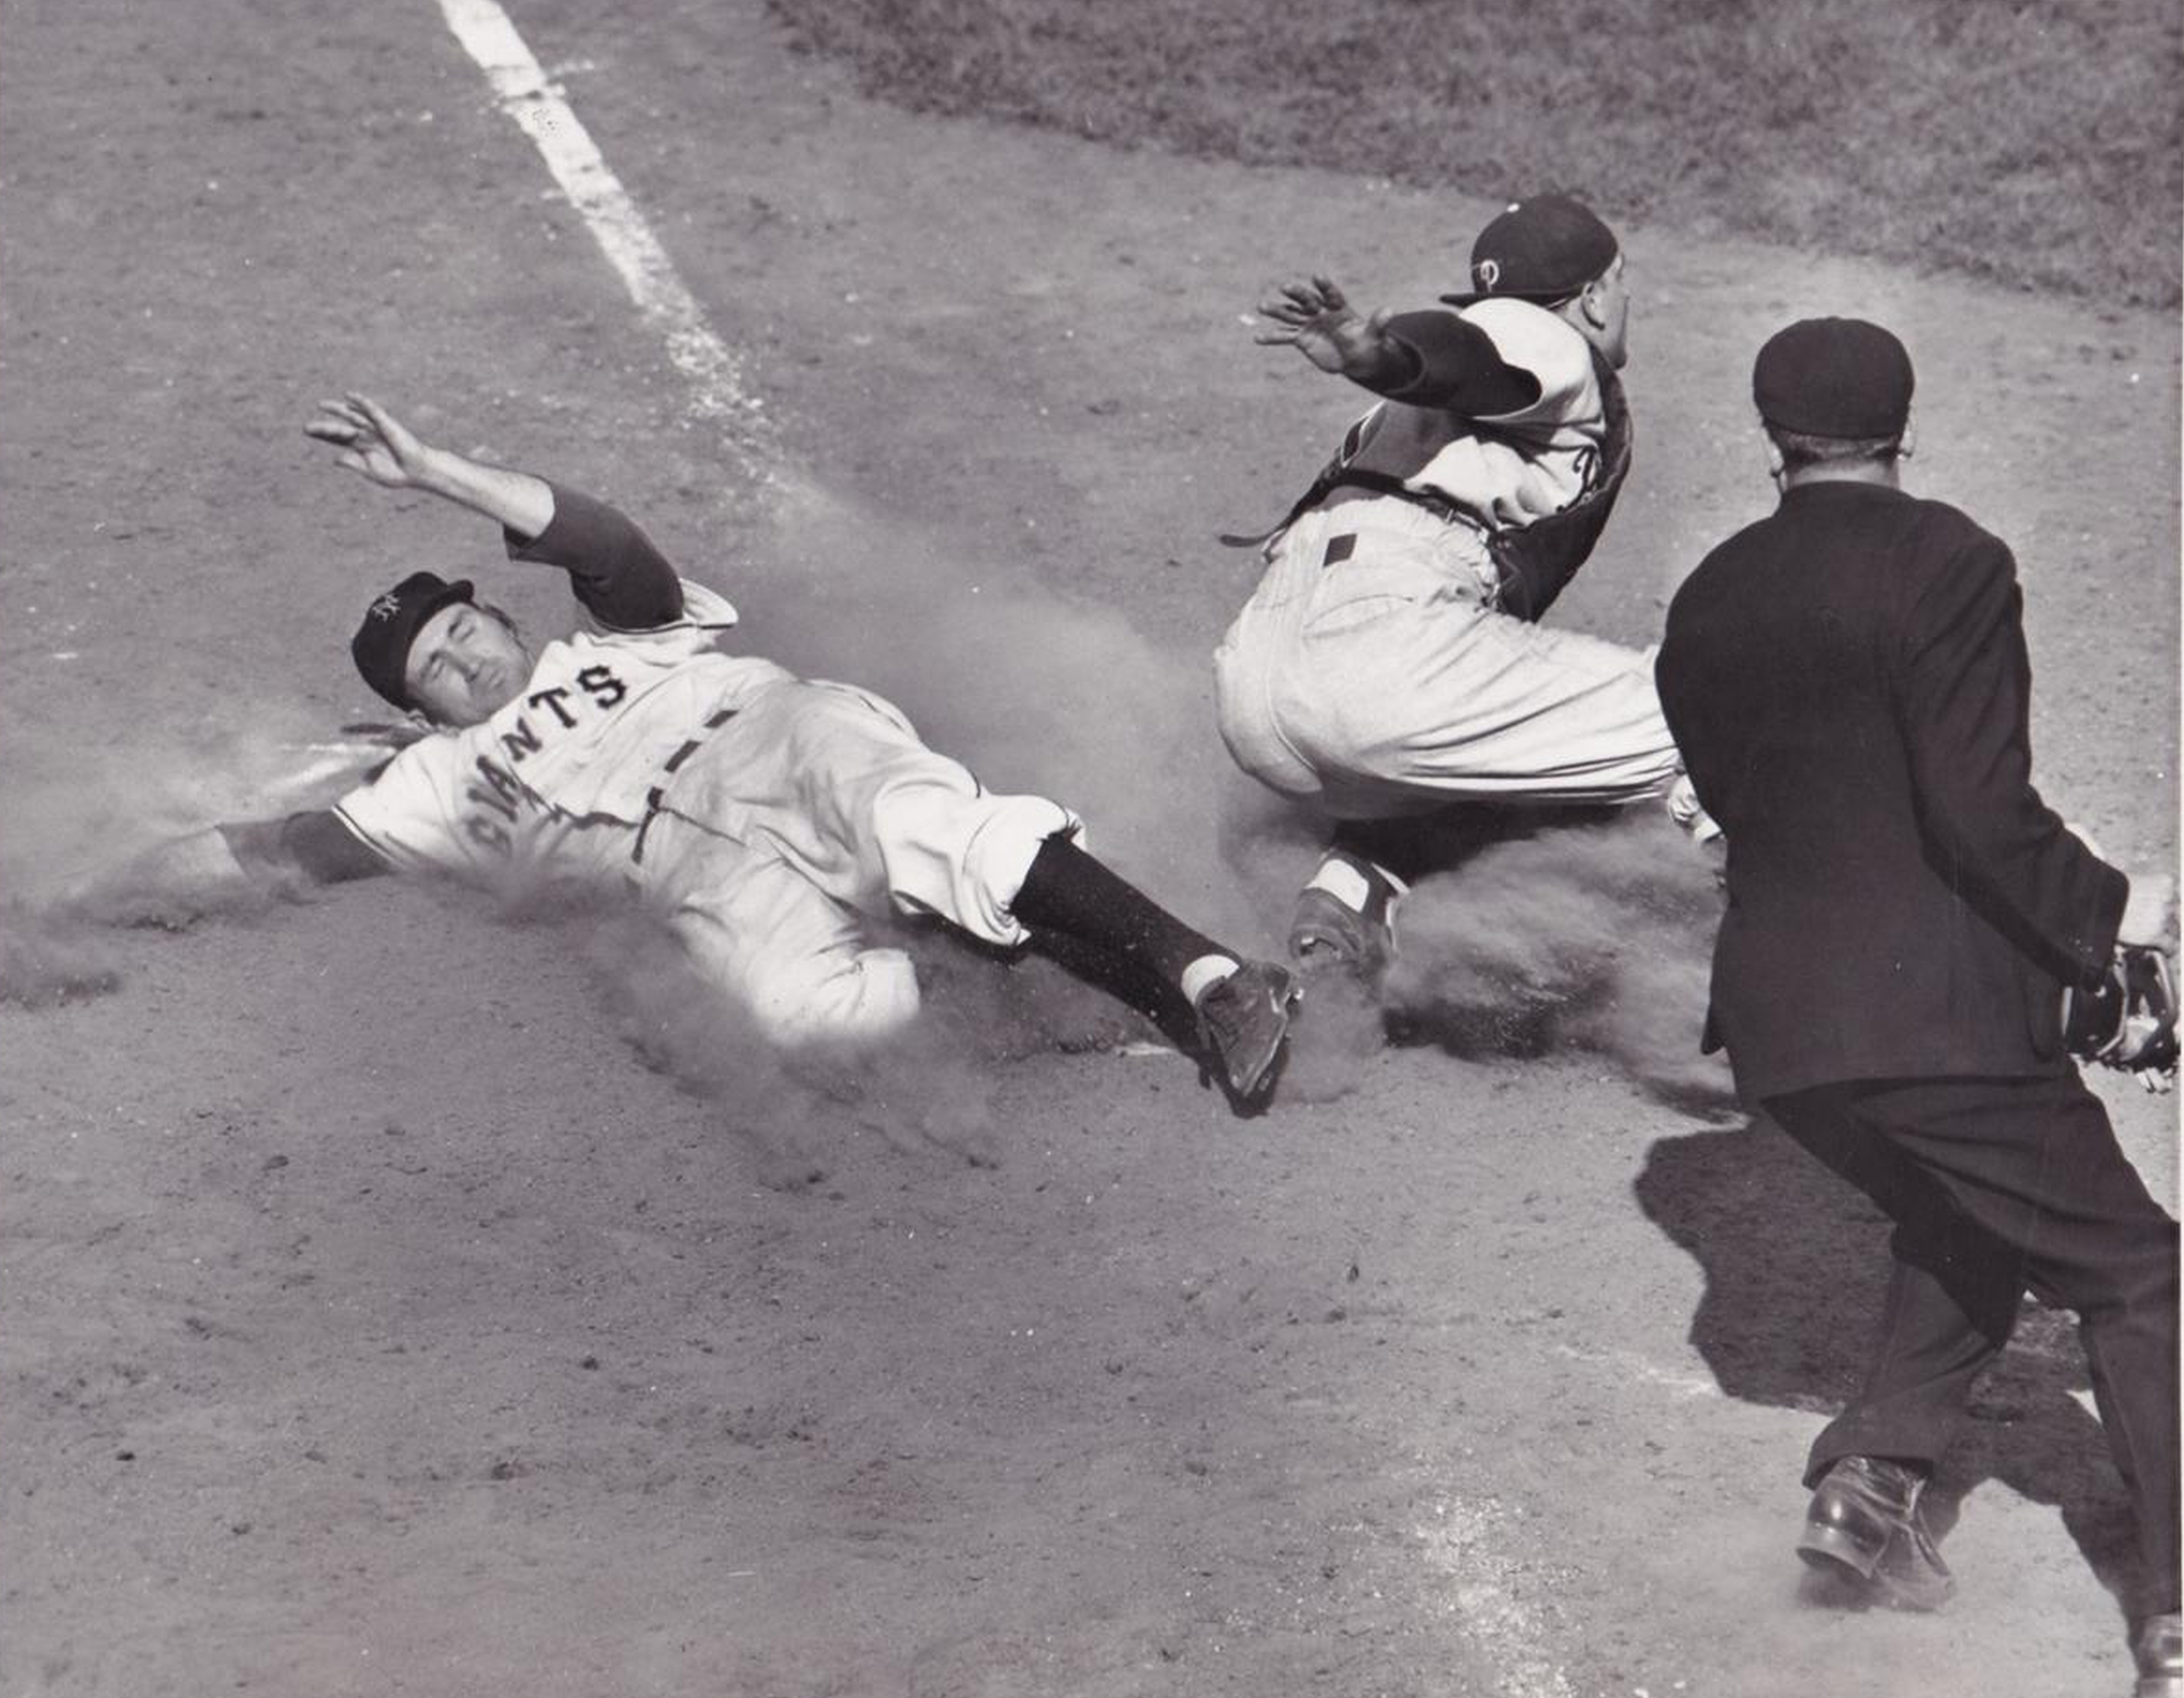 Alvin Dark Slides Home Safely At The Polo Grounds - 1950